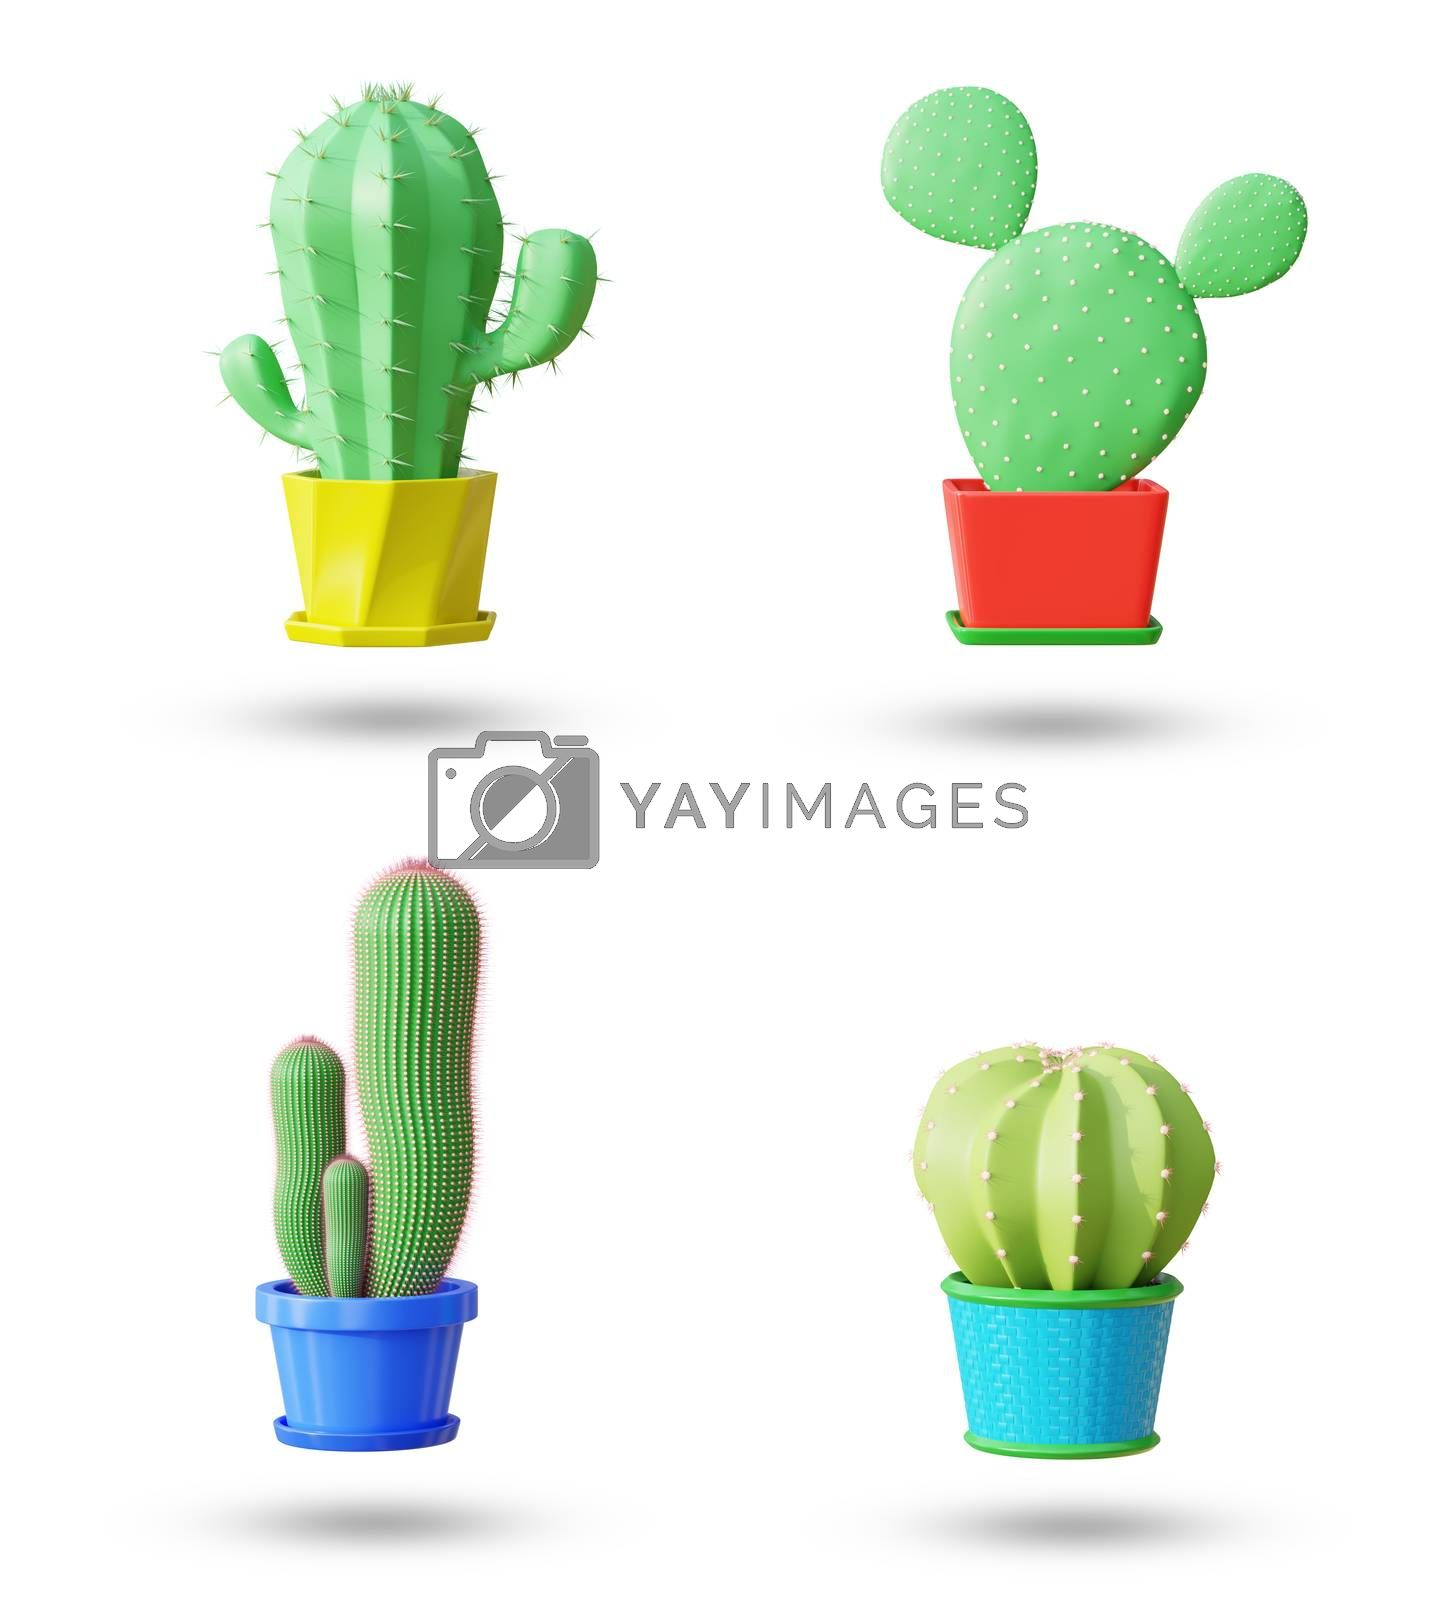 Set elements of cactus in cartoon minimal style with white background and clipping path. It is a plant that lives in the western desert. The concept of lover cactus. 3D illustration rendering.